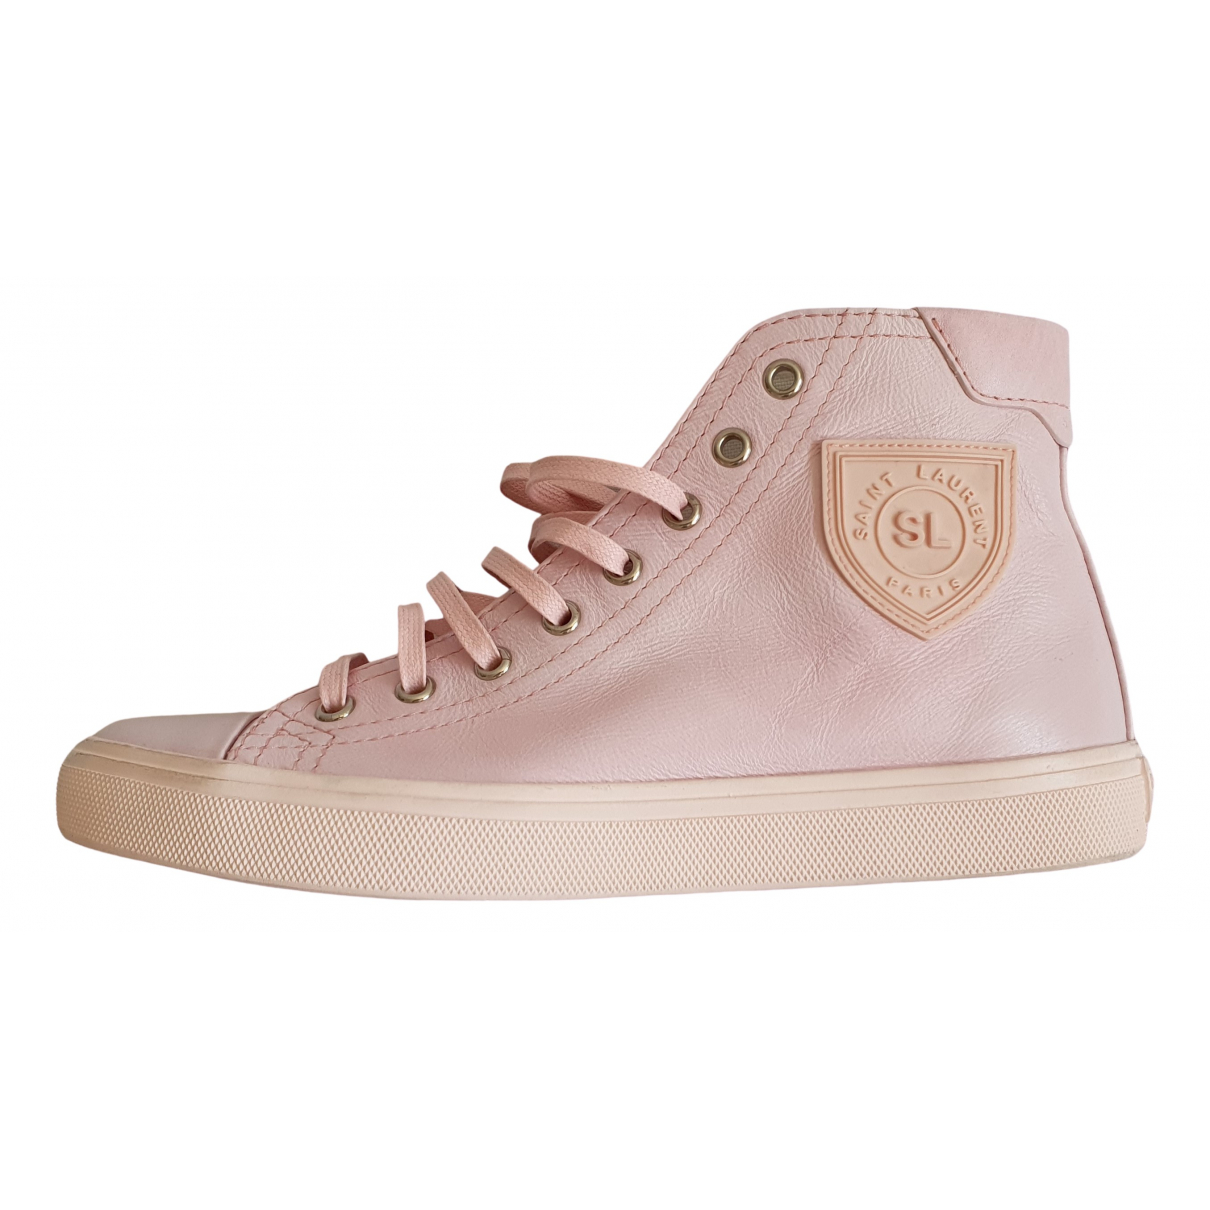 Saint Laurent \N Pink Leather Trainers for Women 37 EU